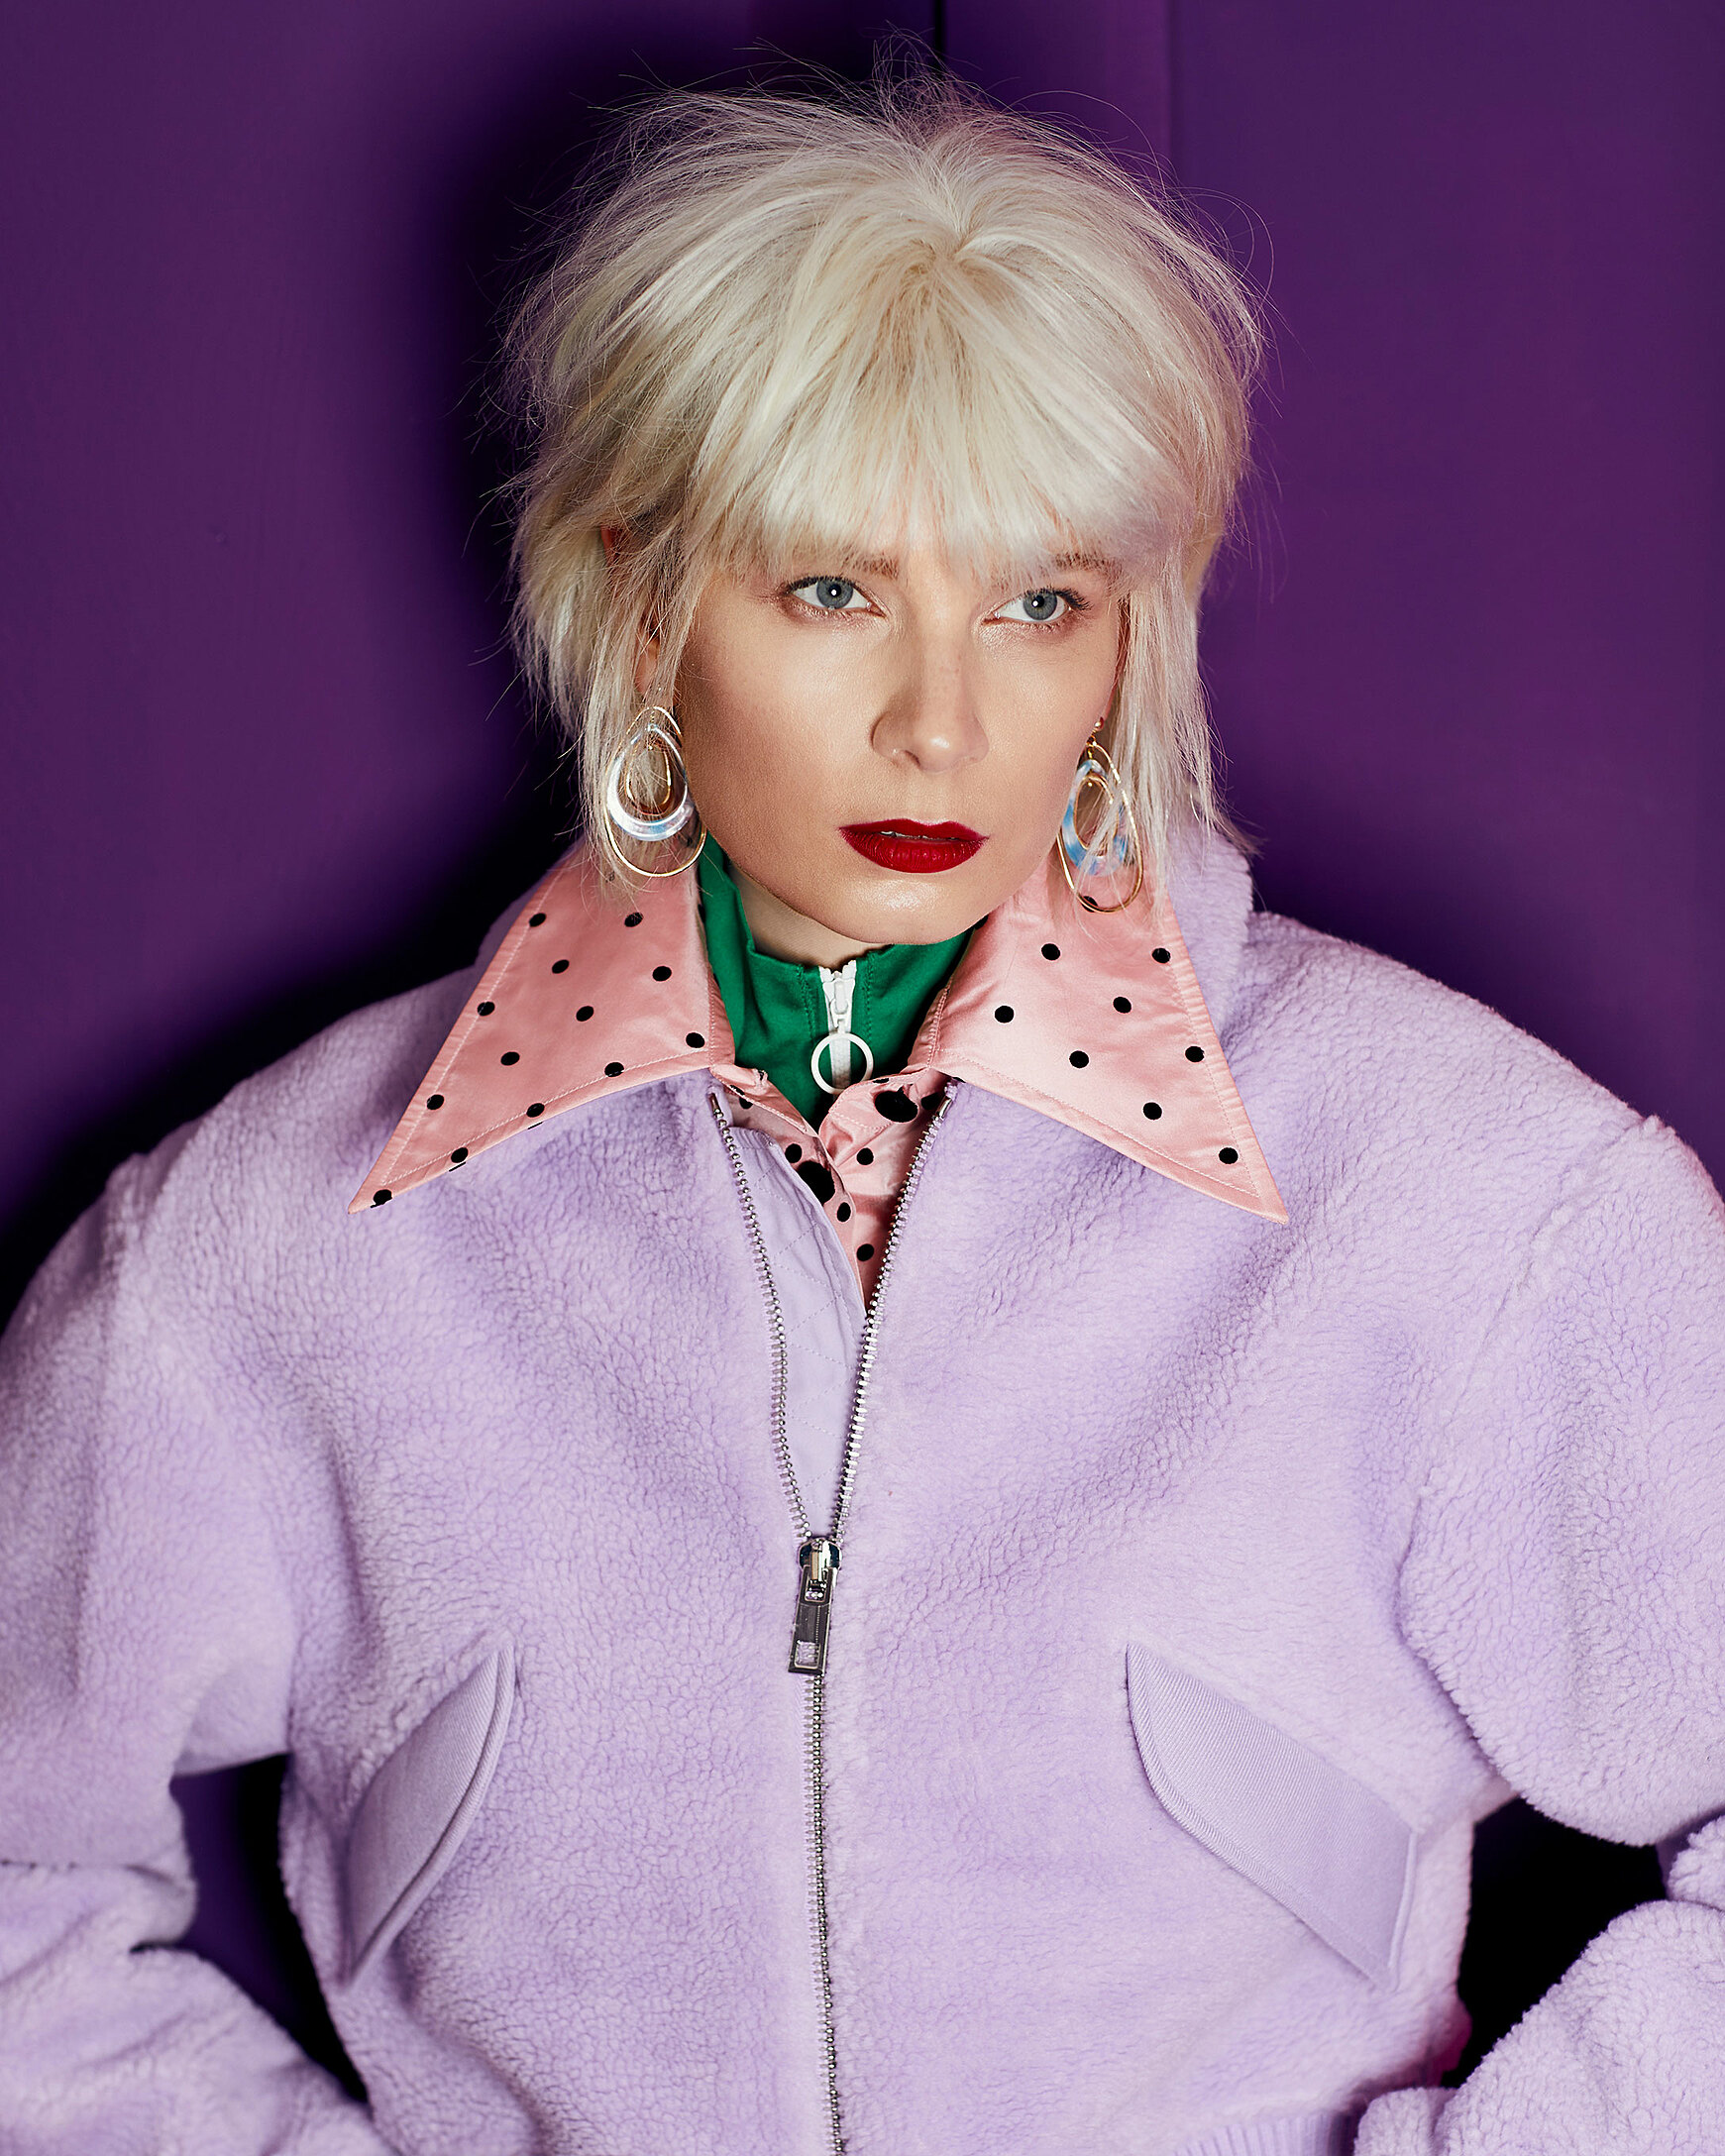 A portrait of a female model with a blonde wig in a light violet cozy jacket and a rose dotted collar